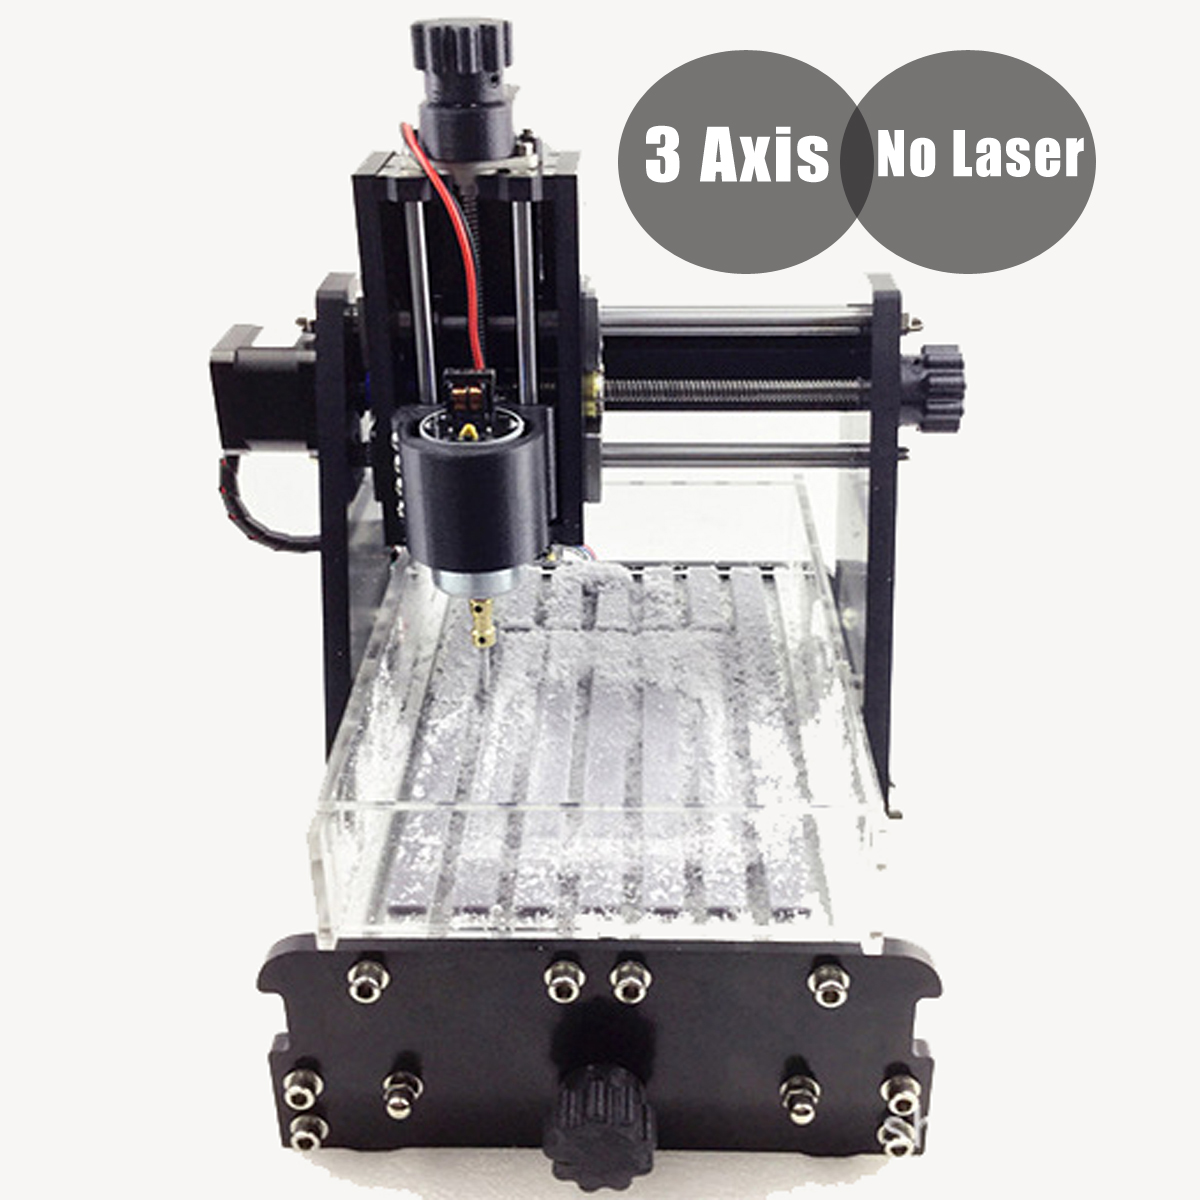 DIY Mini Engraving Machine 3 Axis CNC Router Engraving Cutting PVC Milling Machine Engraver No Laser 100V-240V Wood Router jft professional wood cutting machine 3 axis cnc router usb 2 0 port engraver machine high precision ball screw 6090